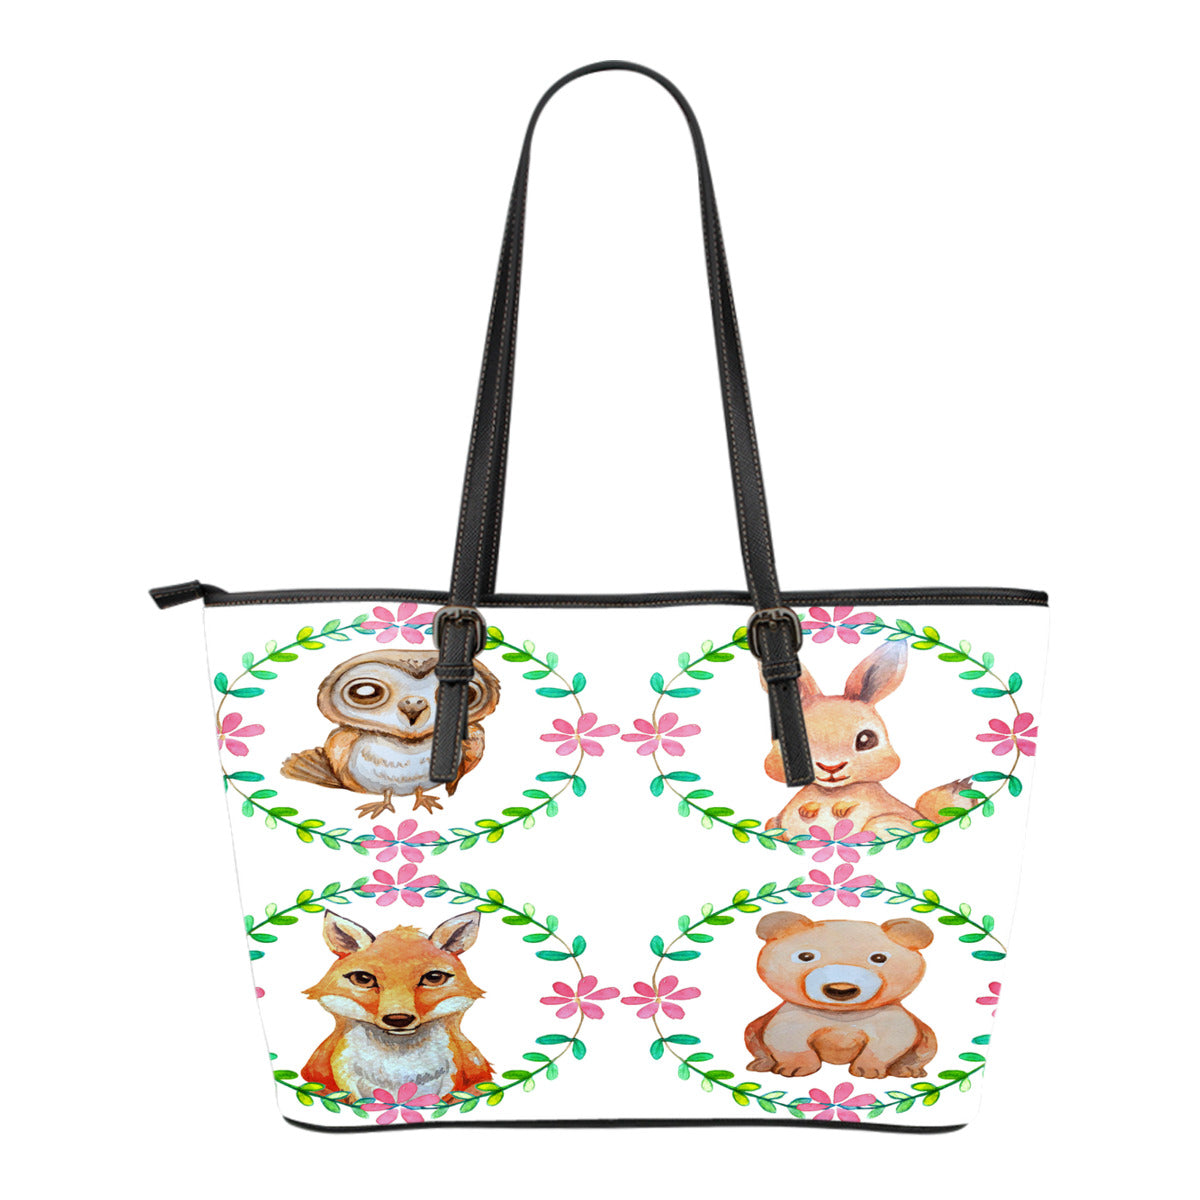 Woodland Themed Design C11 Women Small Leather Tote Bag